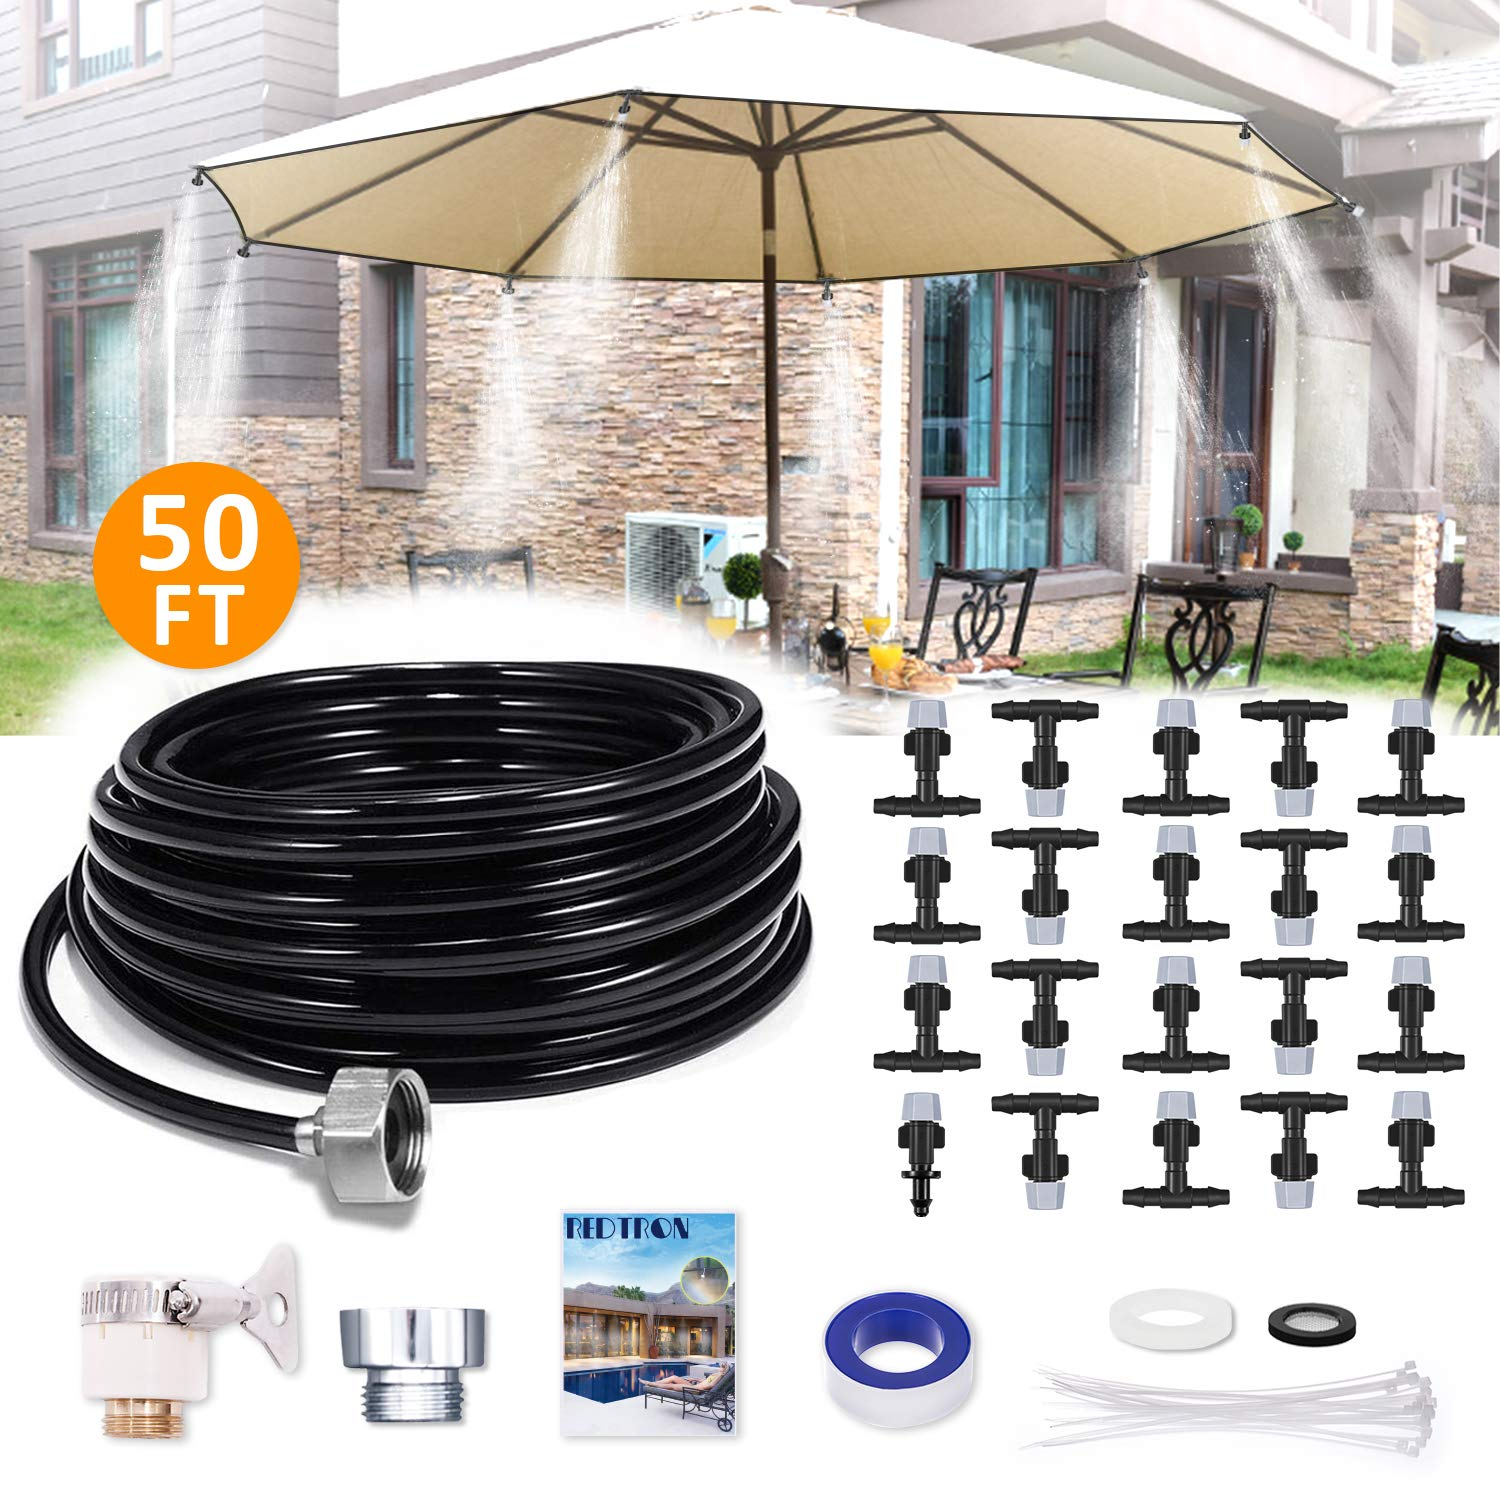 REDTRON 50FT Mist Cooling System, Patio Misting System with 20 Misting Nozzles